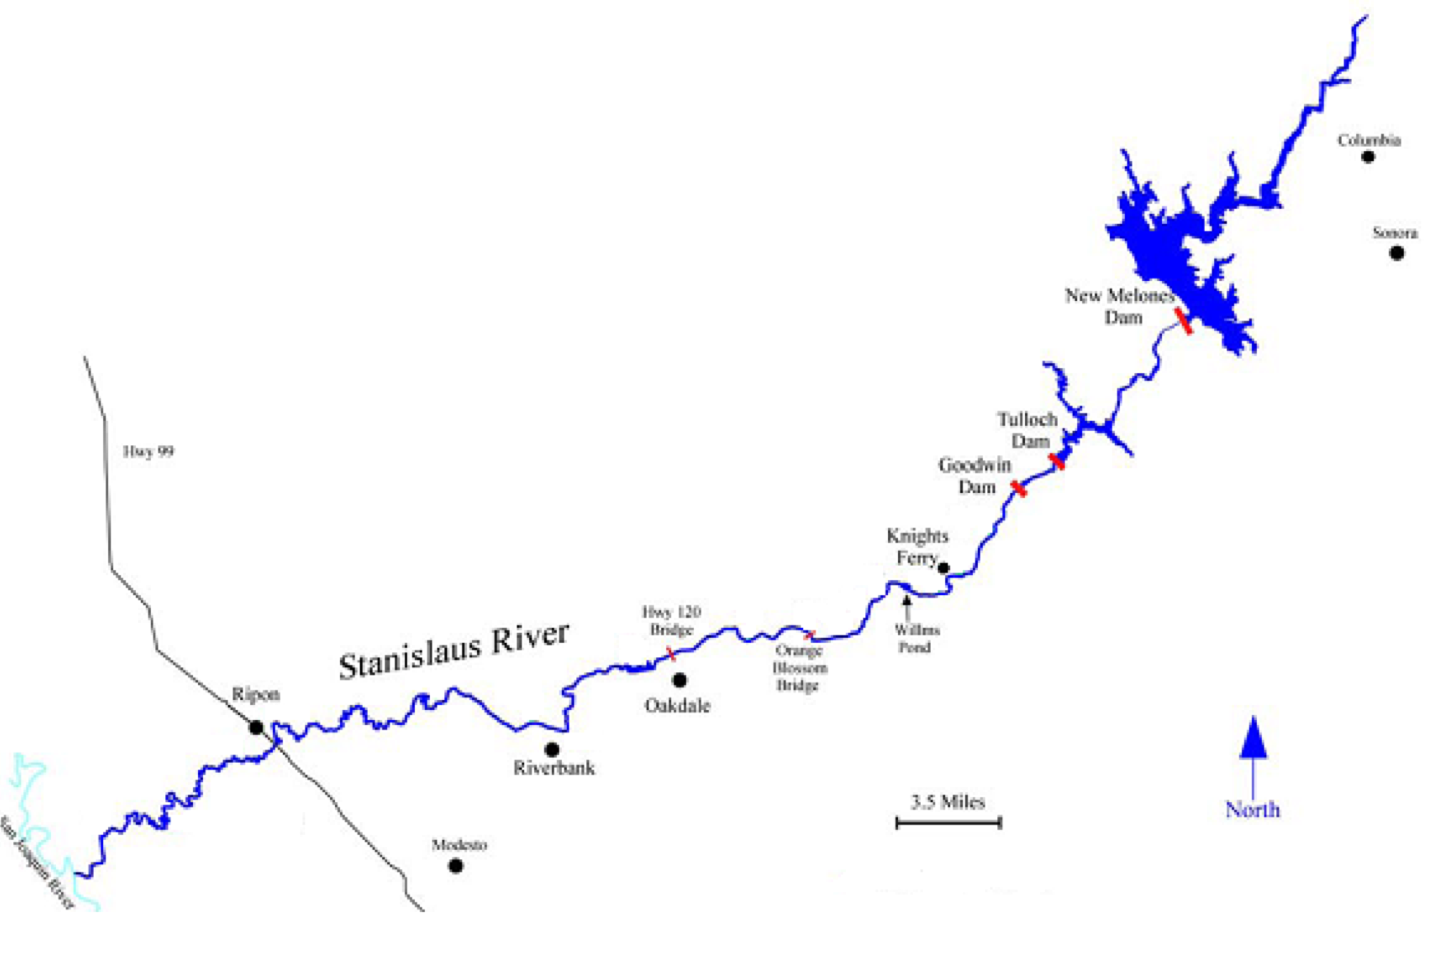 stanislaus trout (steelhead)  california fisheries blog - map of lower stanislaus river with usgs gaging stations